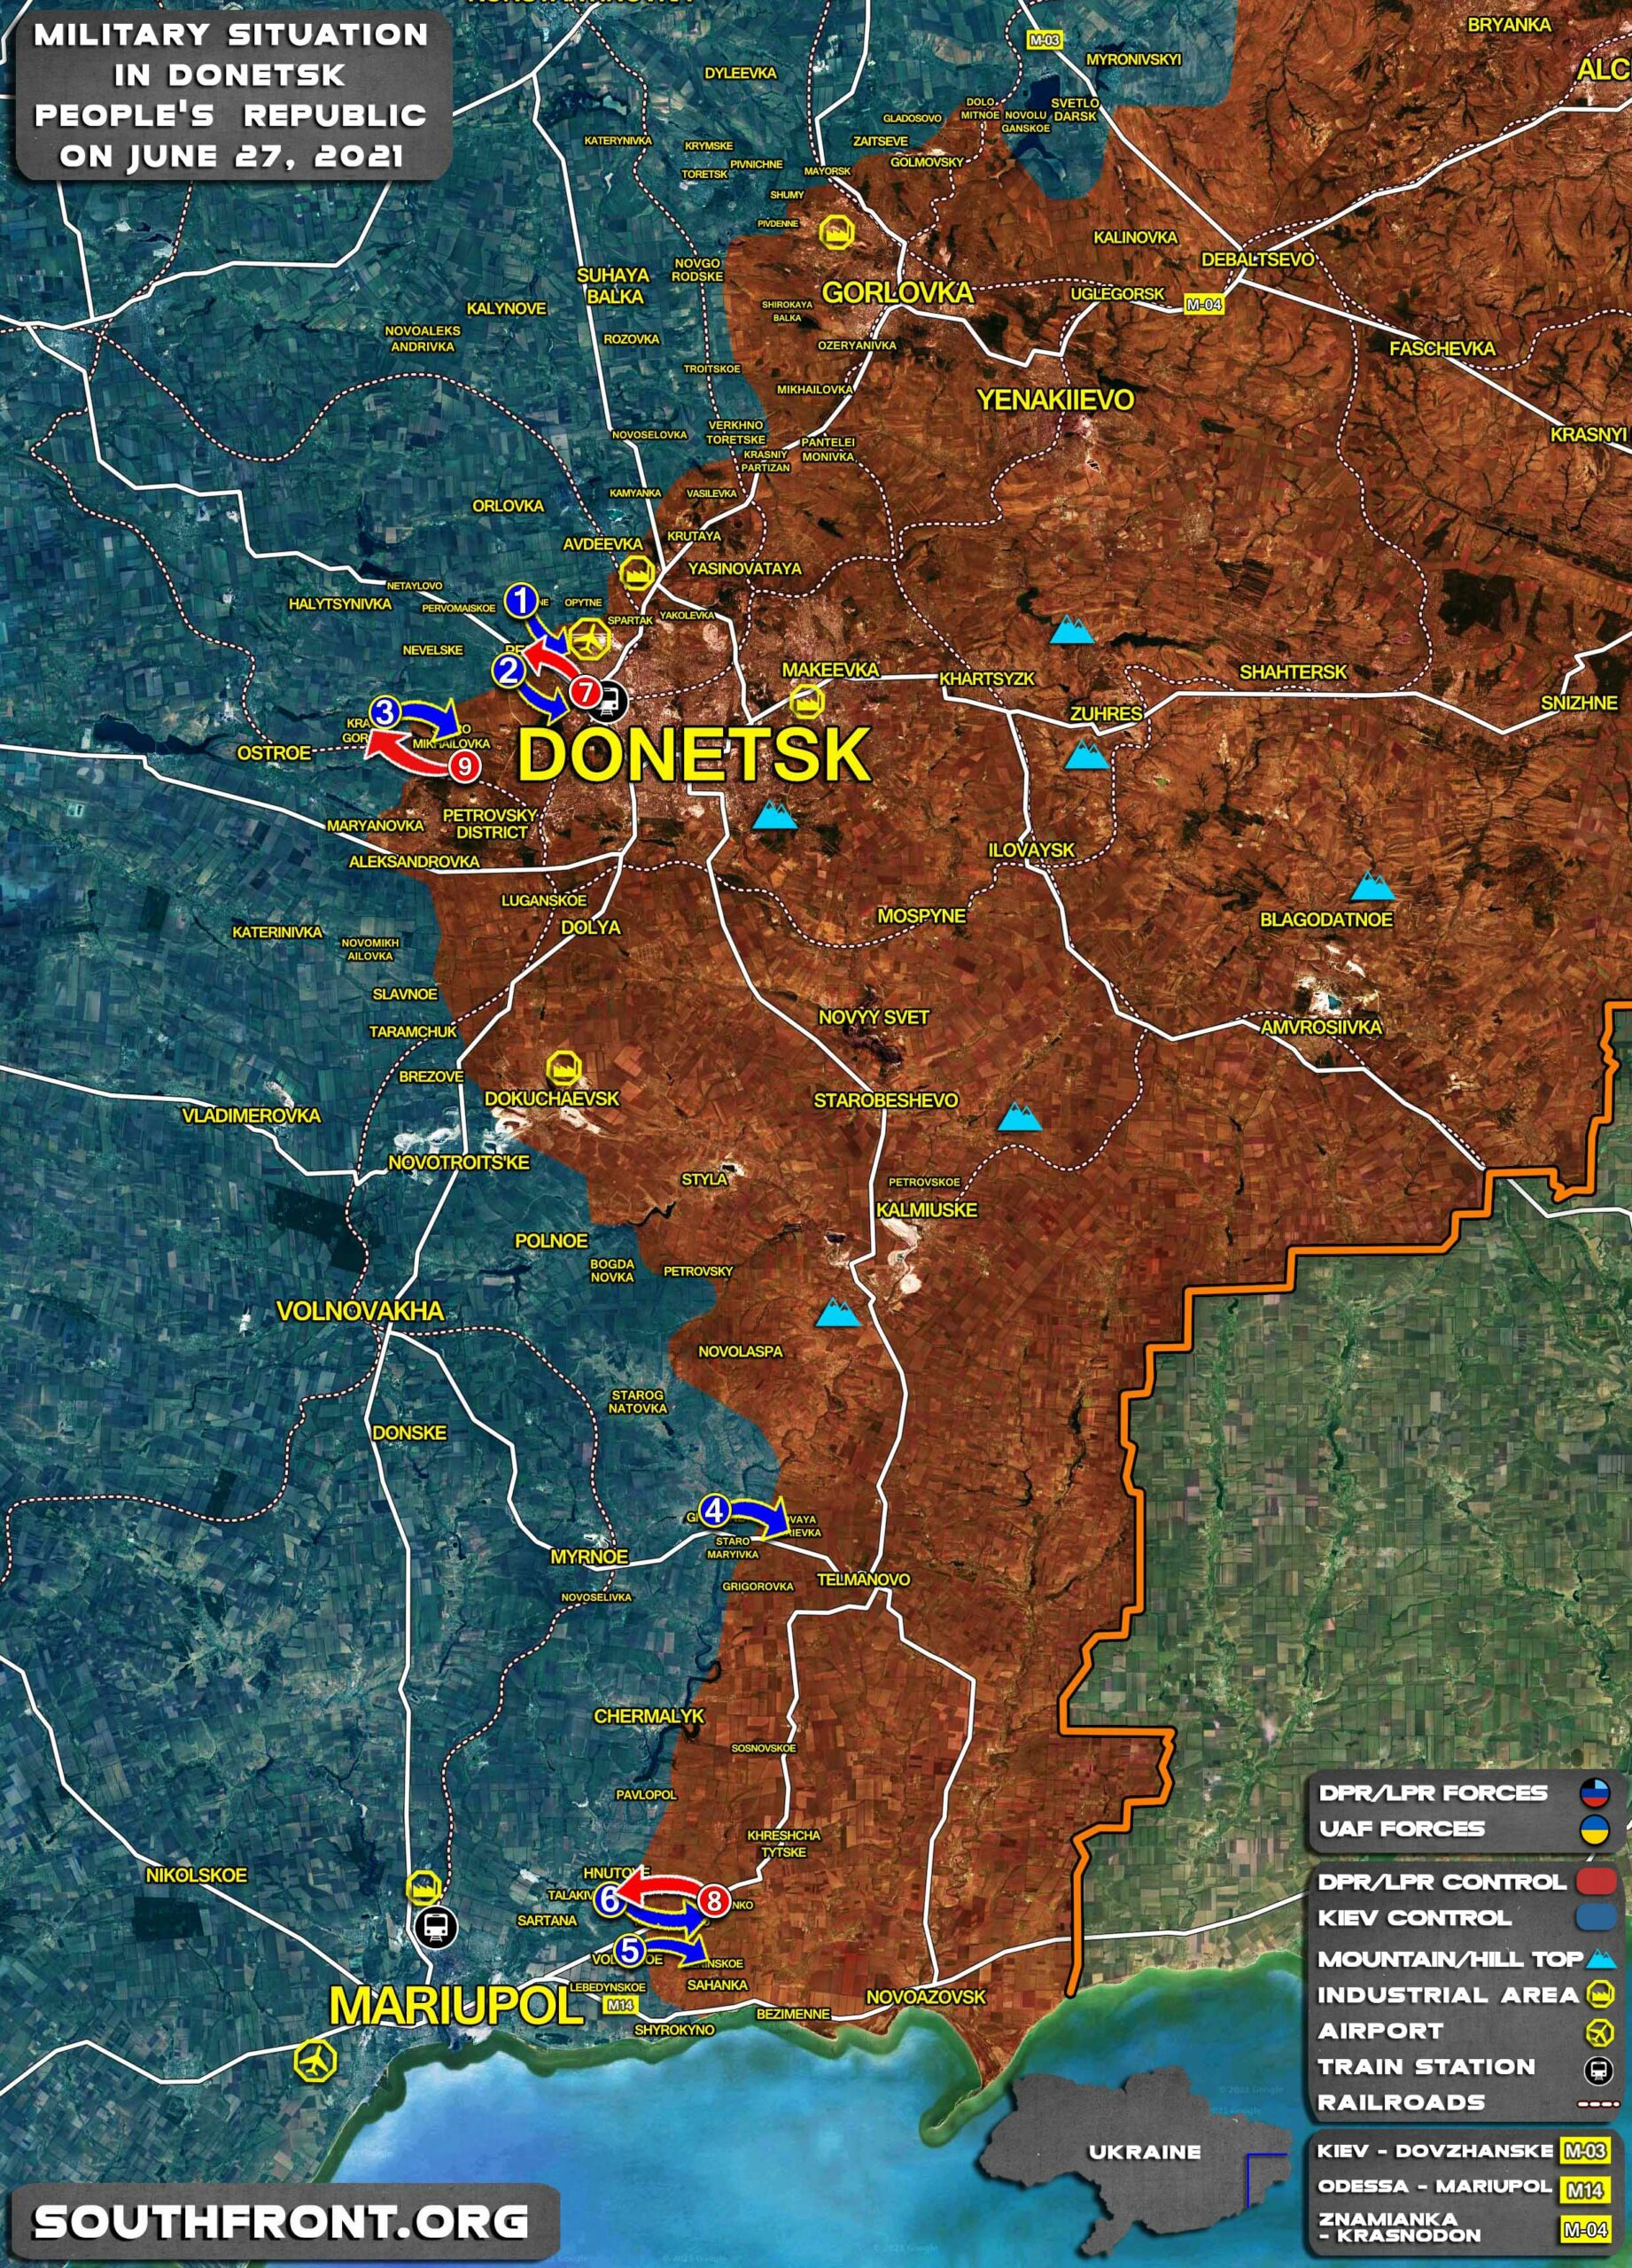 Military Situation In Donetsk People's Republic On June 27, 2021 (Map Update)